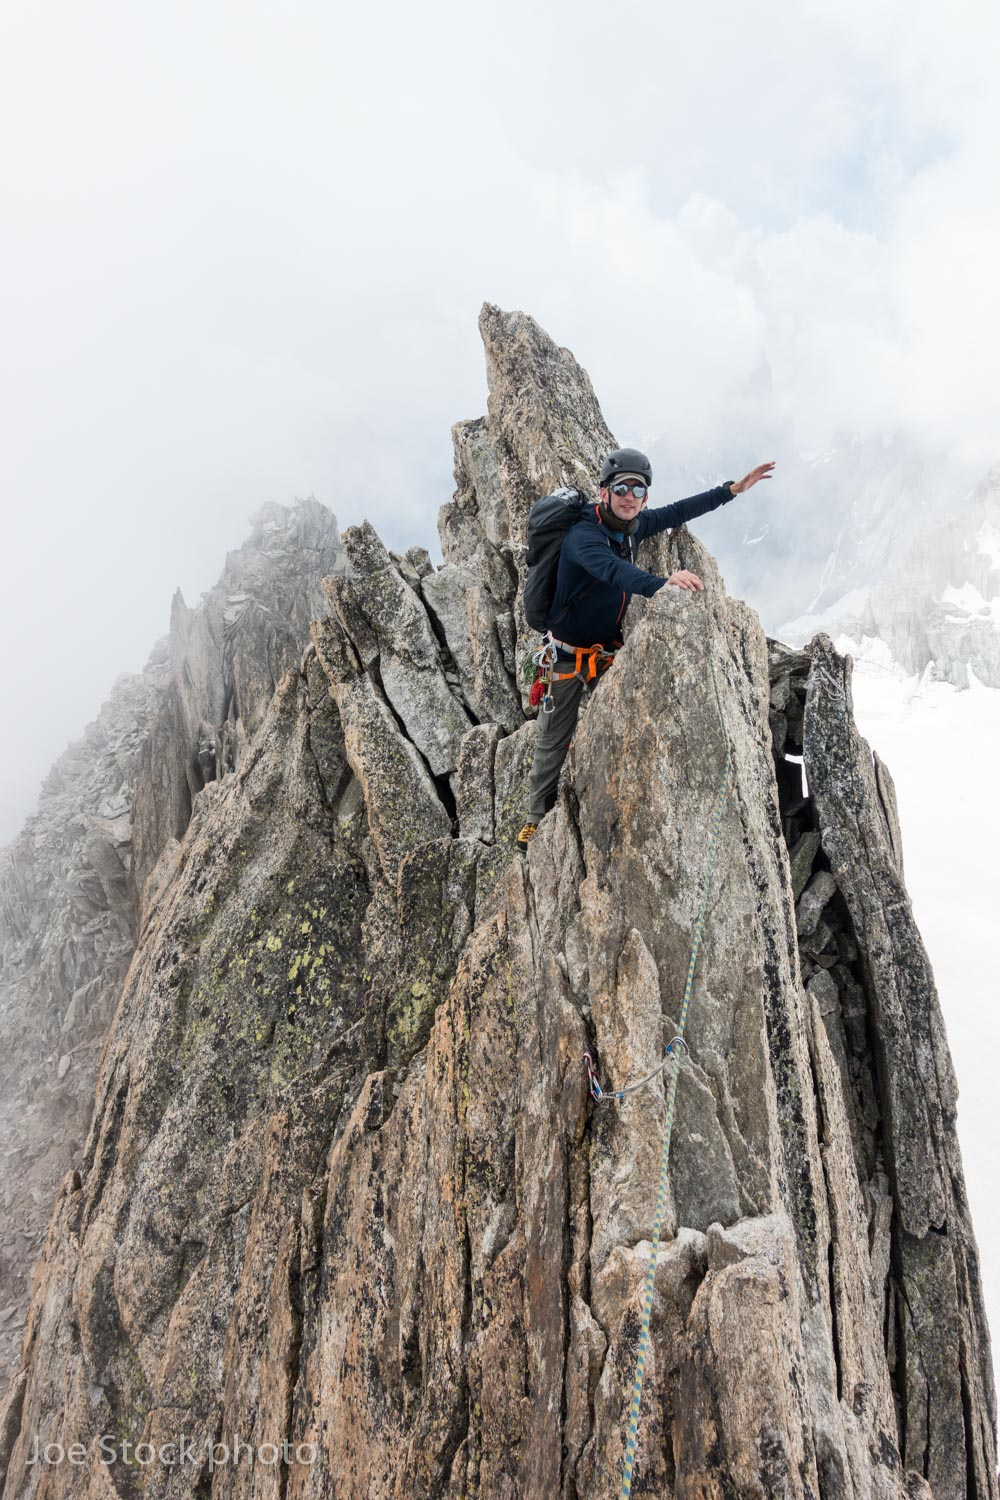 Jeff Munro on the classic Traverse of the Entrèves on the French Italian border.